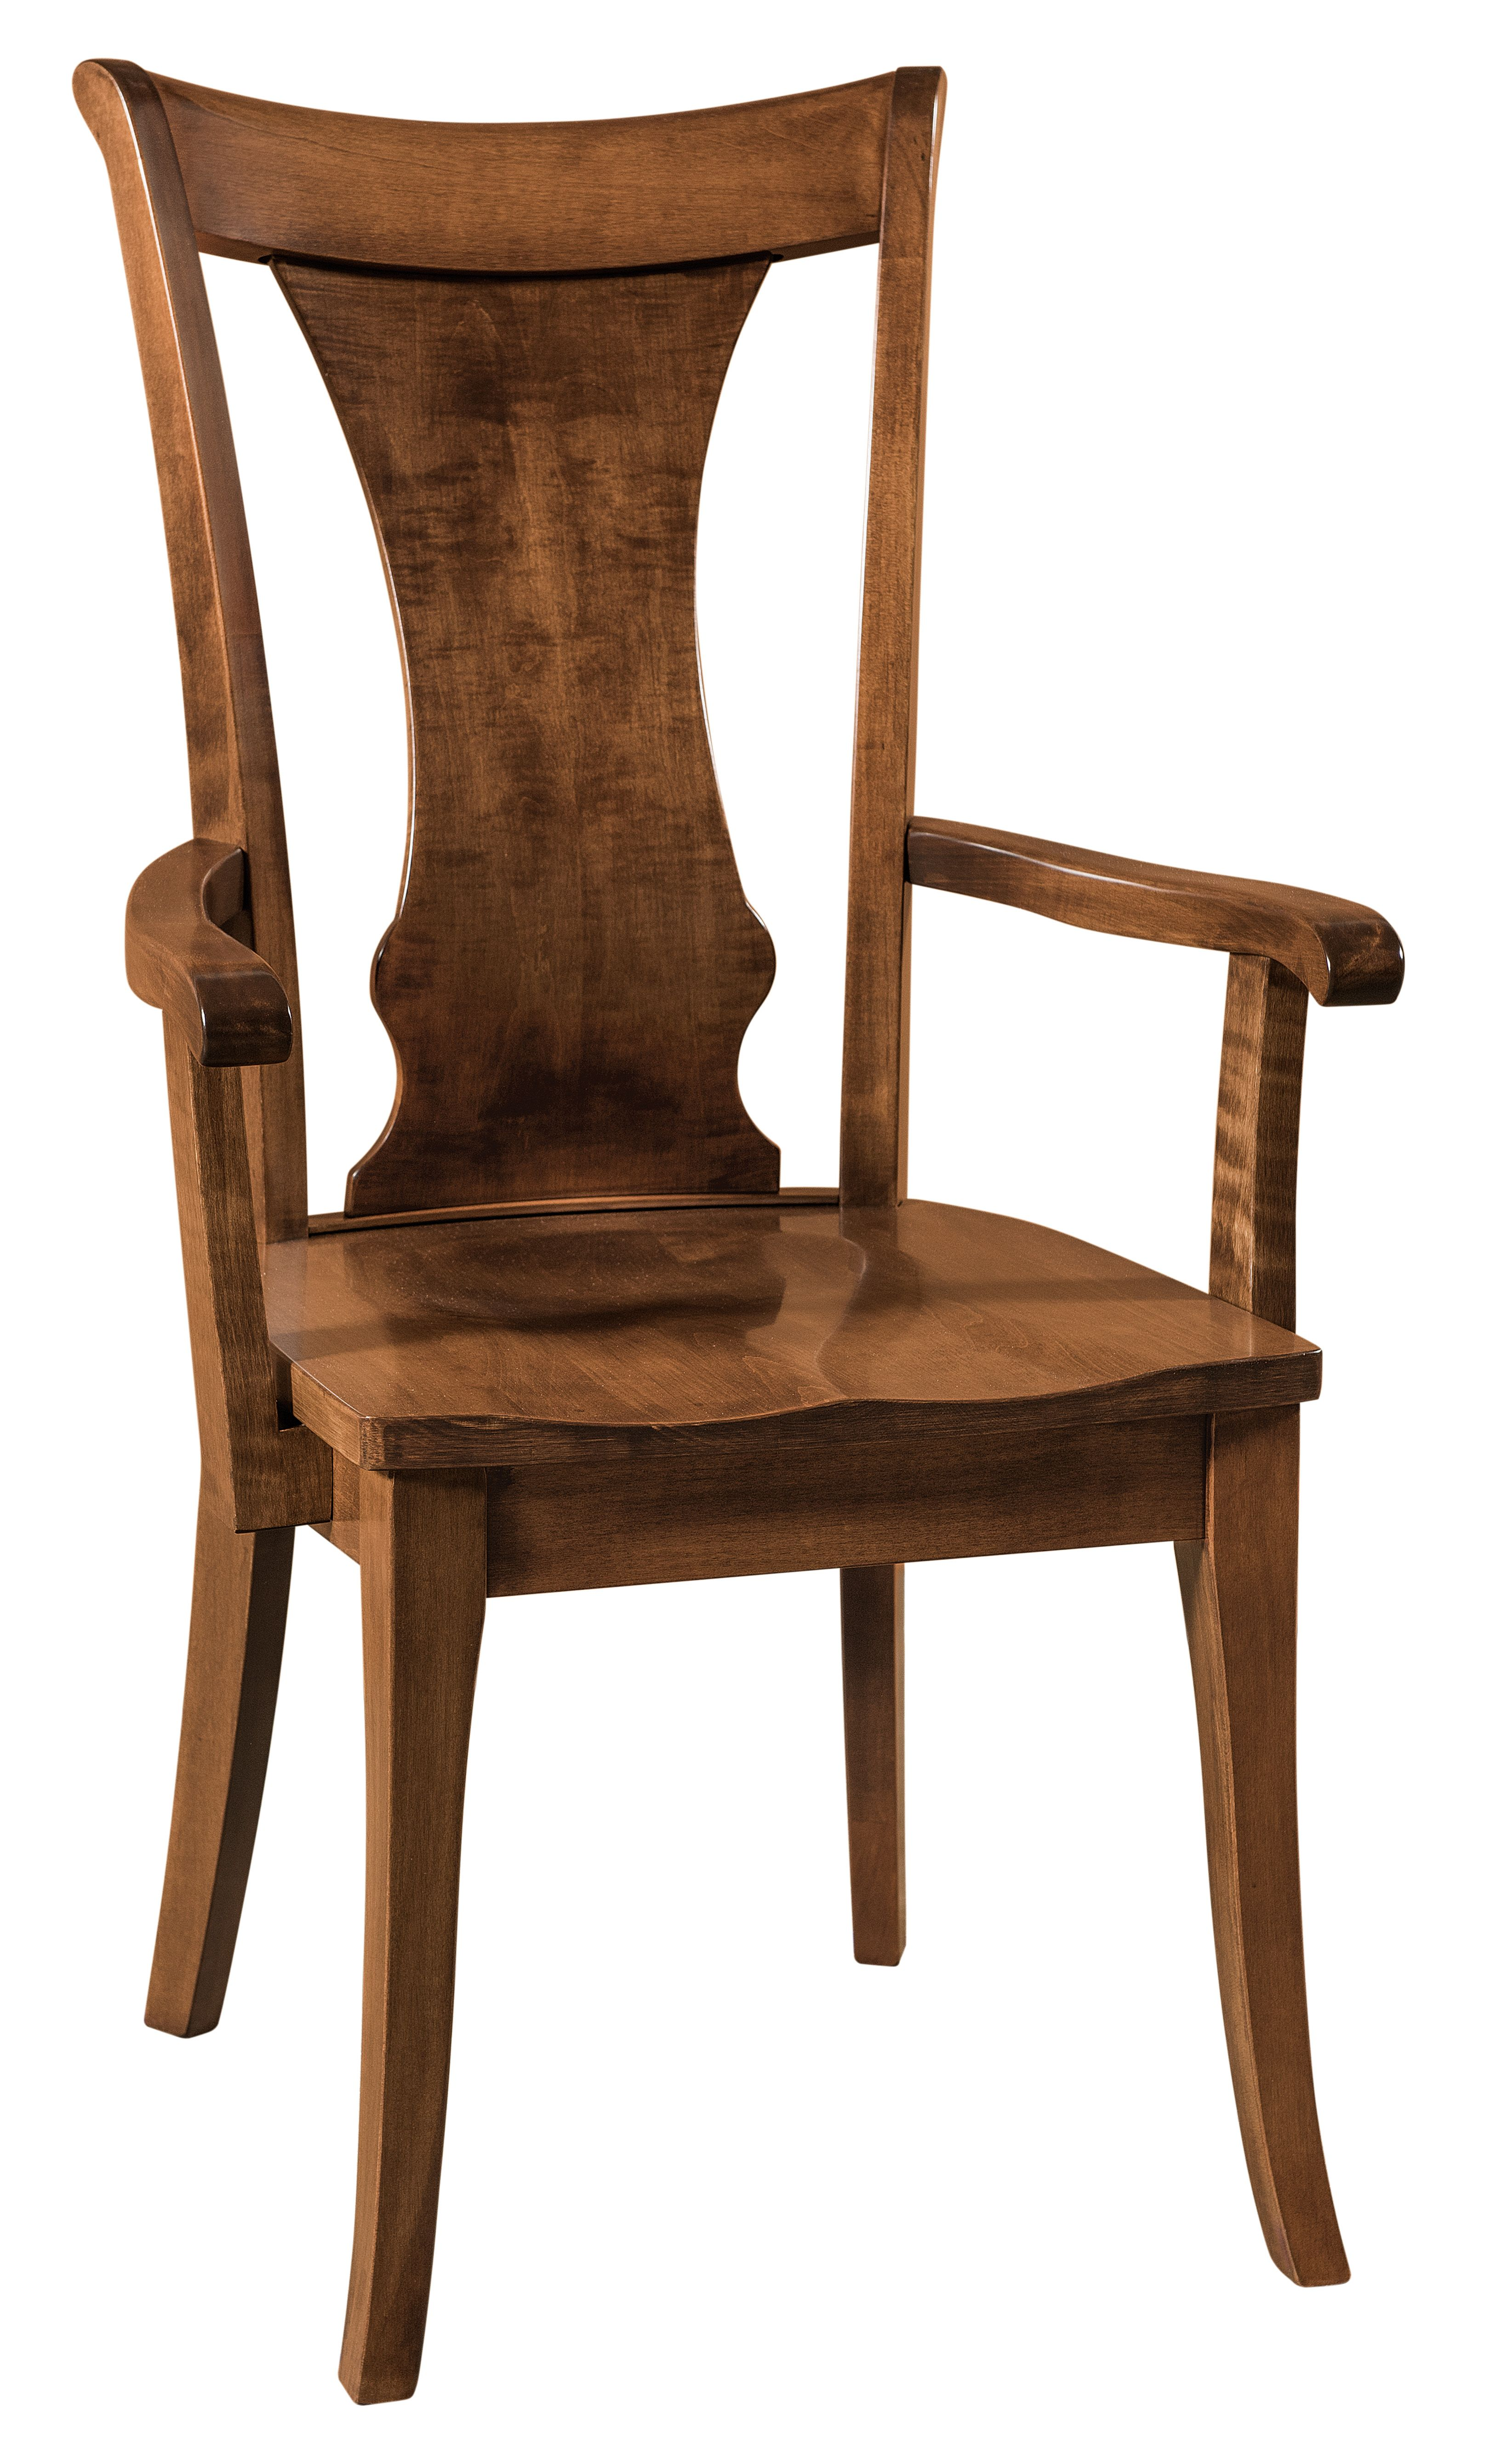 Arm Chair Benjamin Furniture Made In USA Outlet Discount Furniture  Selections Discount Furniture At Amish Oak And Cherry, Hickory, NC